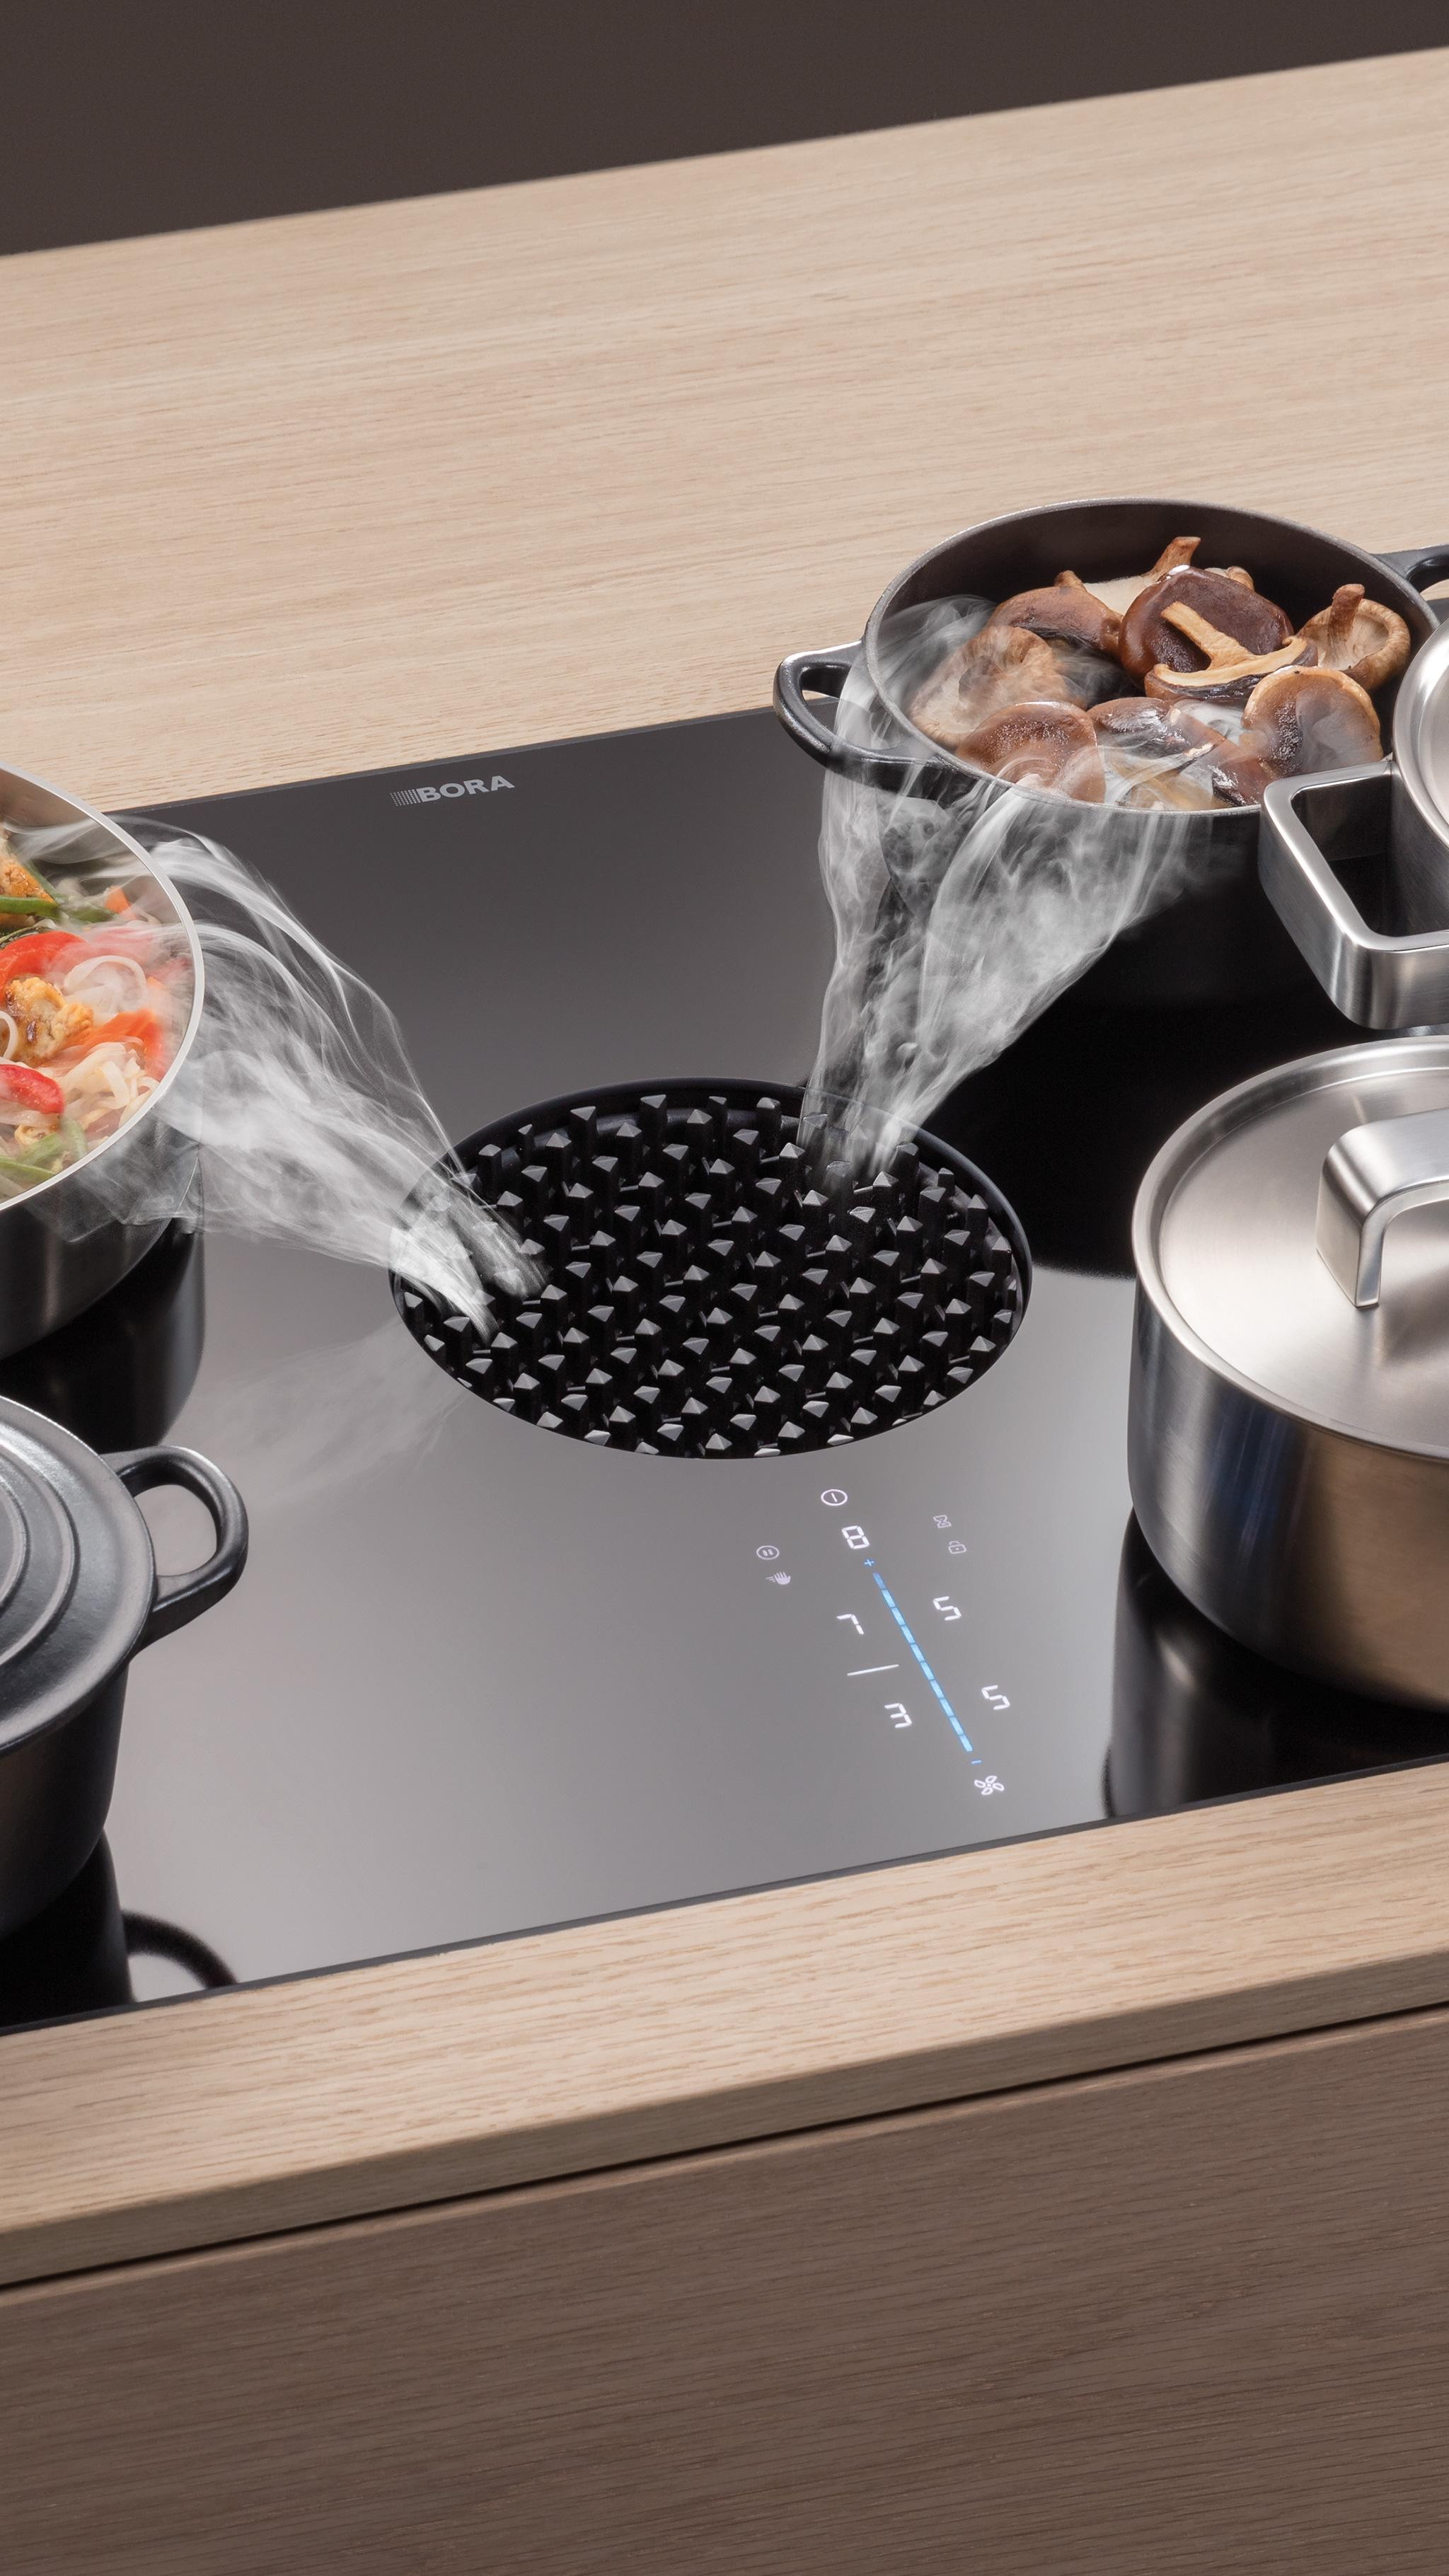 Bora Basic Biu Preis Bora X Pure - Surface Induction And Extraction In One